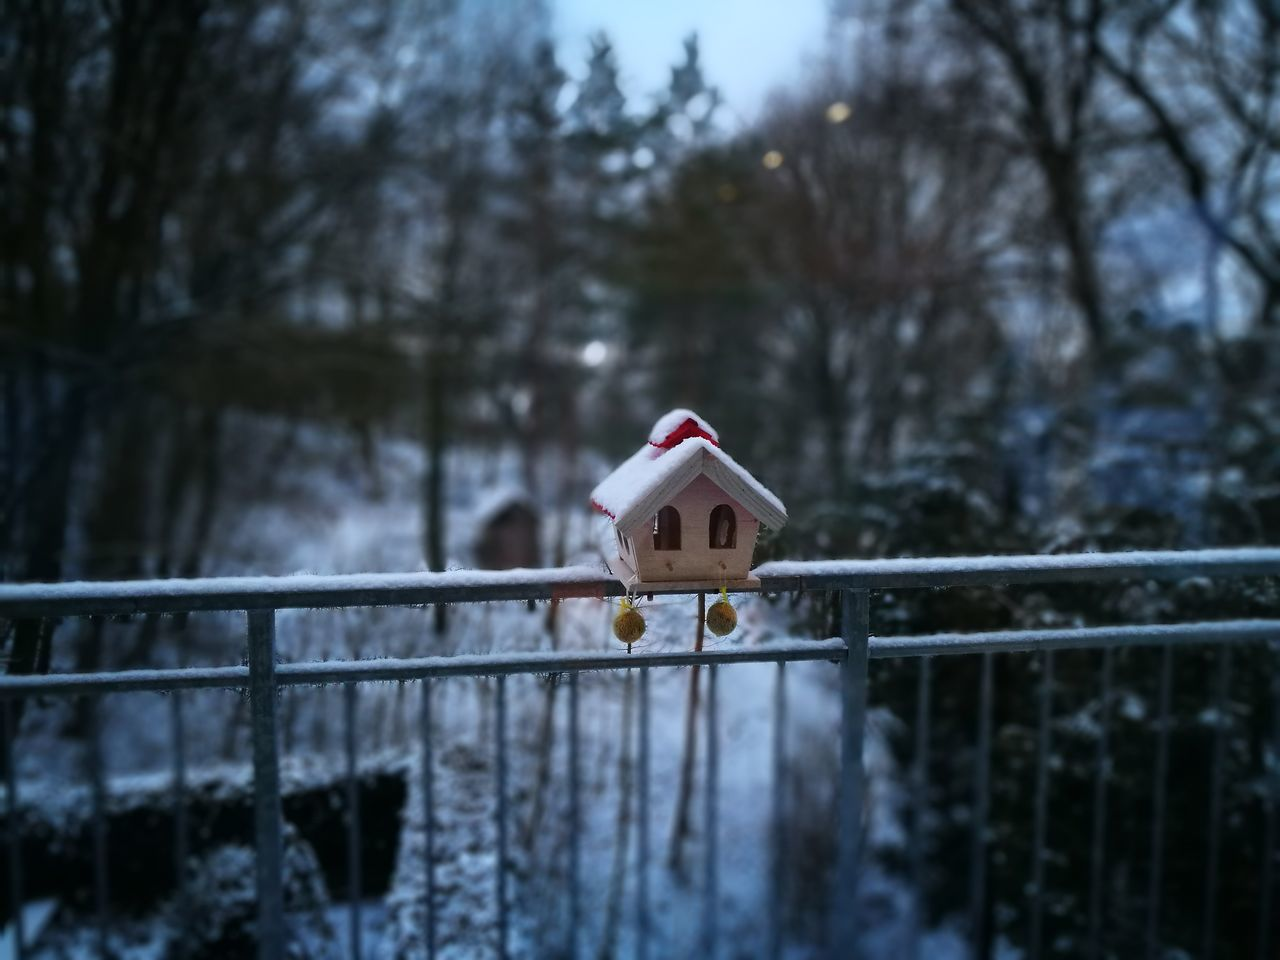 snow, tree, winter, cold temperature, nature, focus on foreground, day, outdoors, snowman, no people, sky